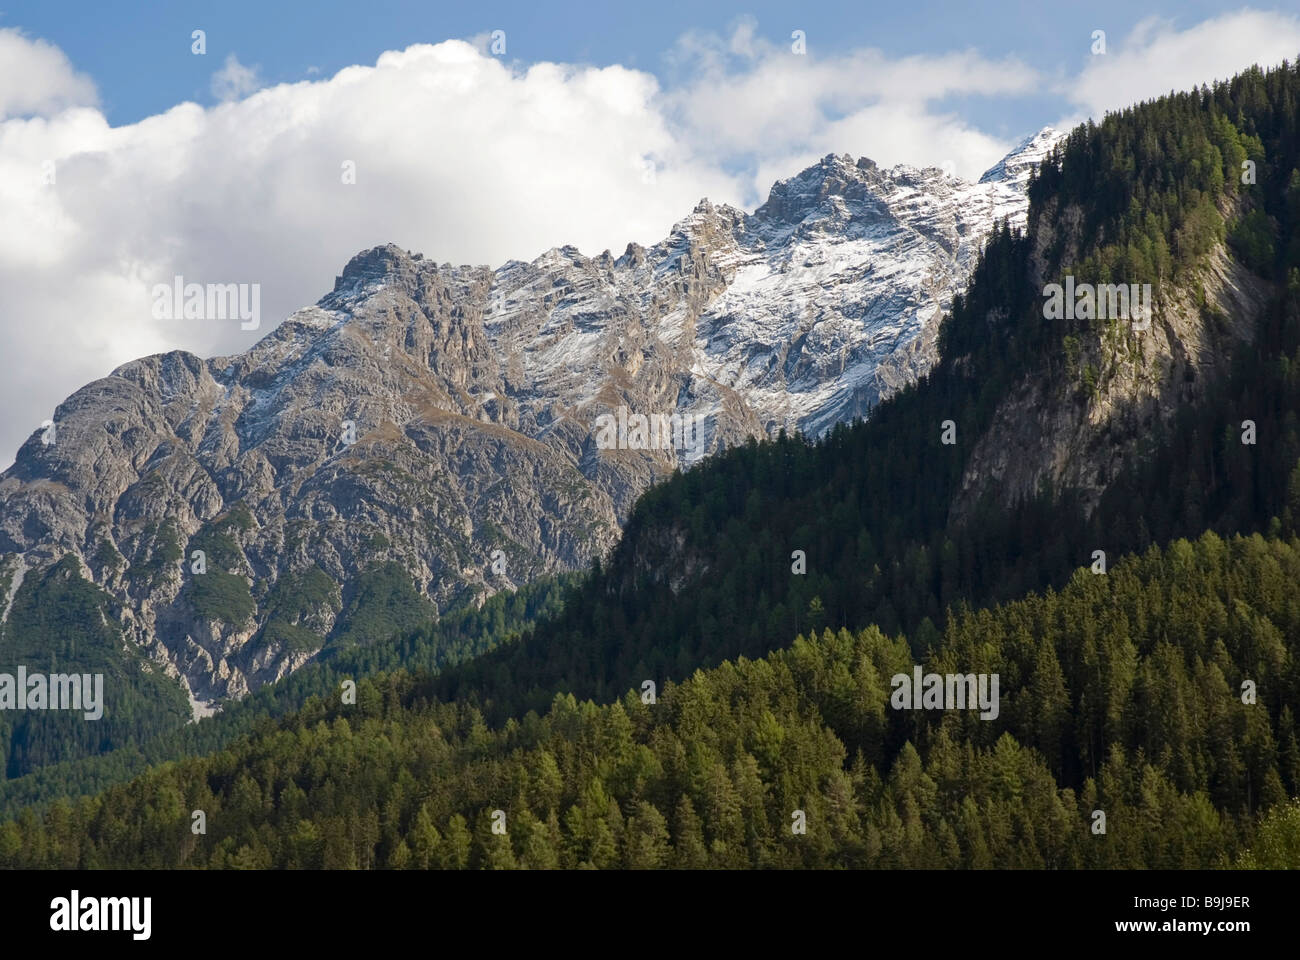 Mount Piz Zuort Metres Above Sea Level And Wooded Slopes In - Metres above sea level